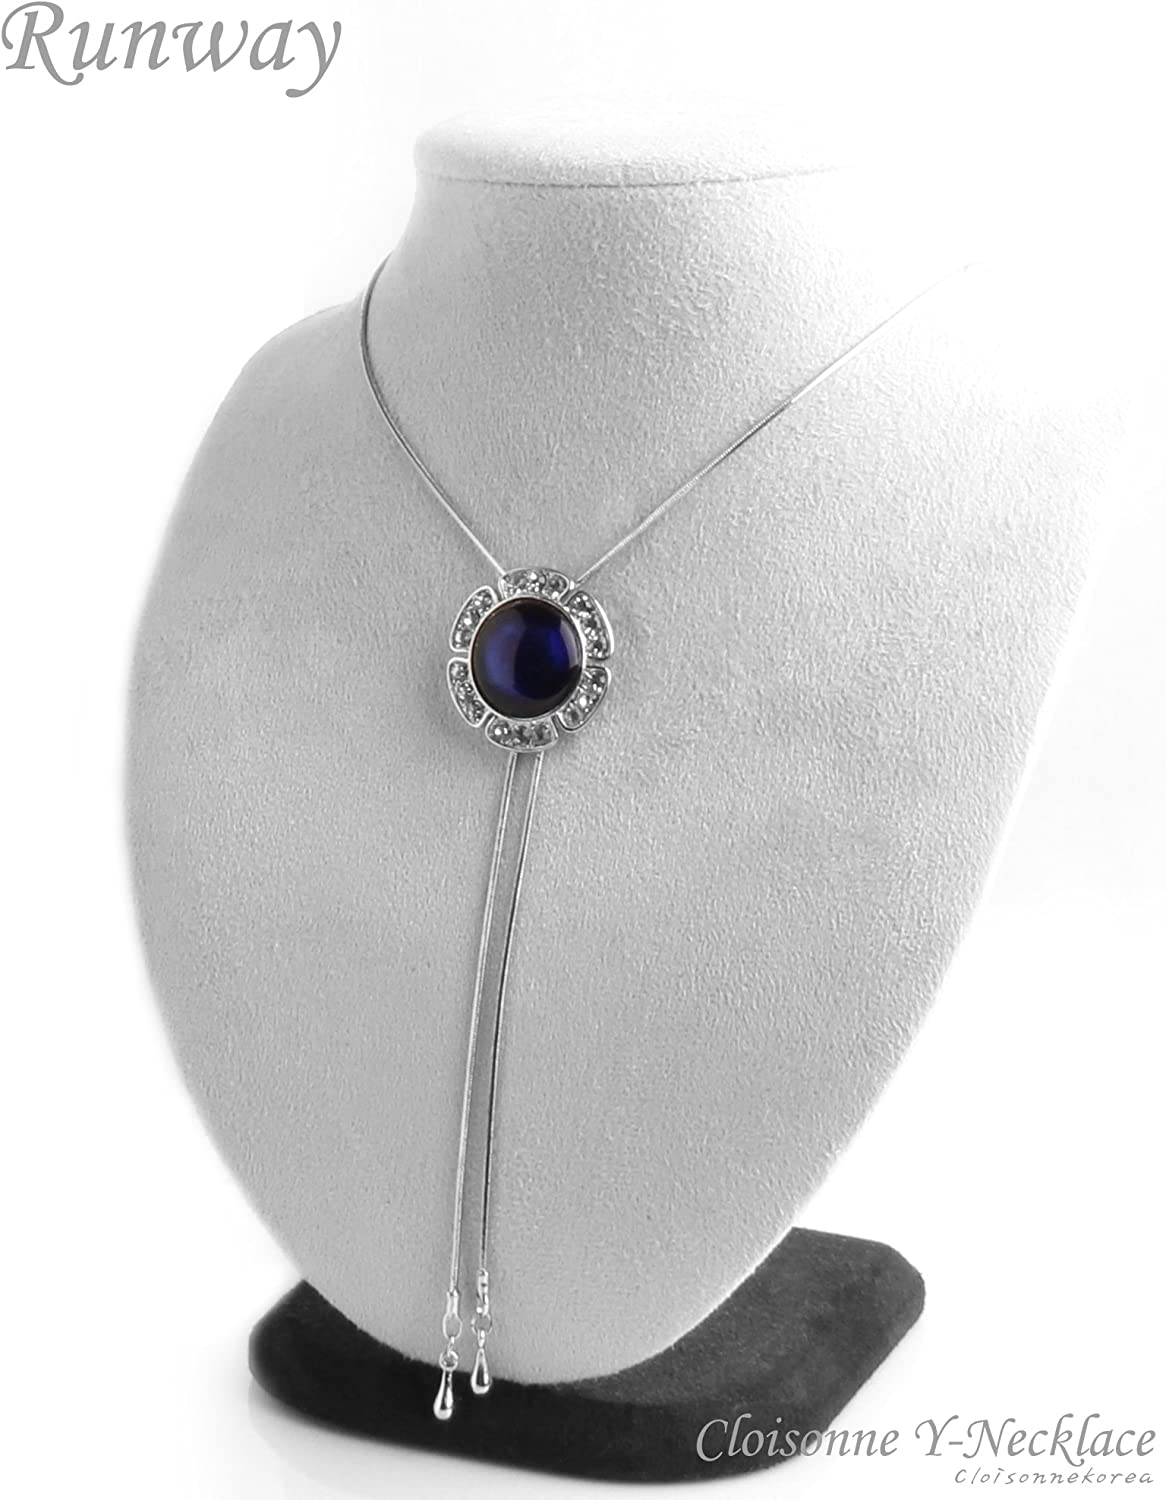 Necklace Cloisonne Easy Sliding Y-Neck Womens Metal Blue Runway W217